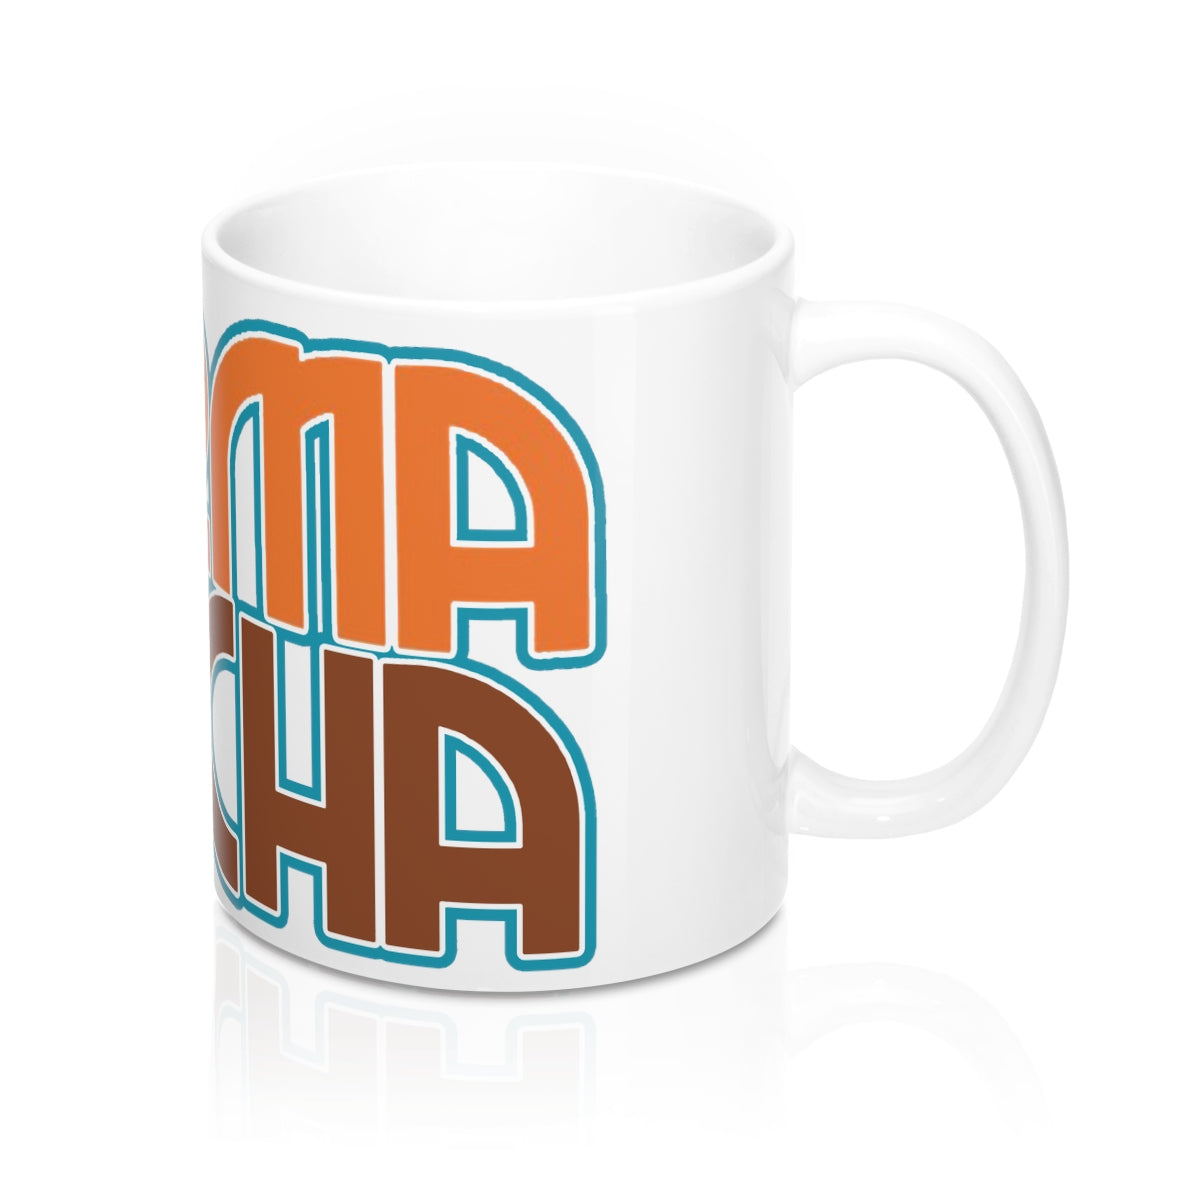 Aroma Mocha Coffee Mug 11oz[product type] - Aroma Mocha Coffee, LLC of Avondale, Arizona